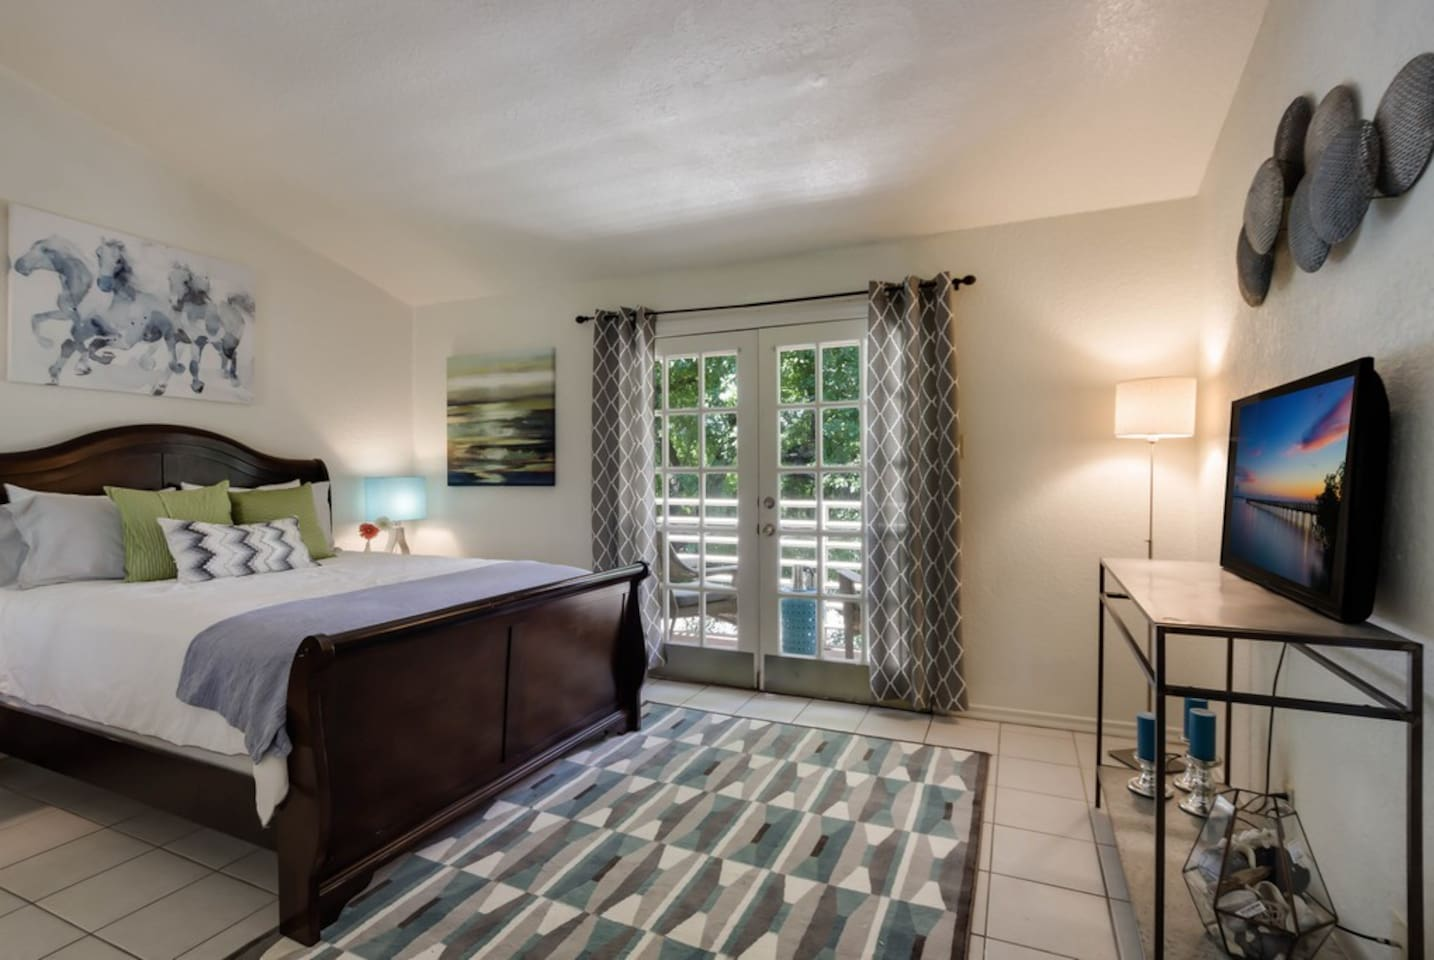 Private Bedroom with Balcony, Full Bath inside the Bedroom, WIFI and TV with Netflix for movies and SLING TV for Live TV.